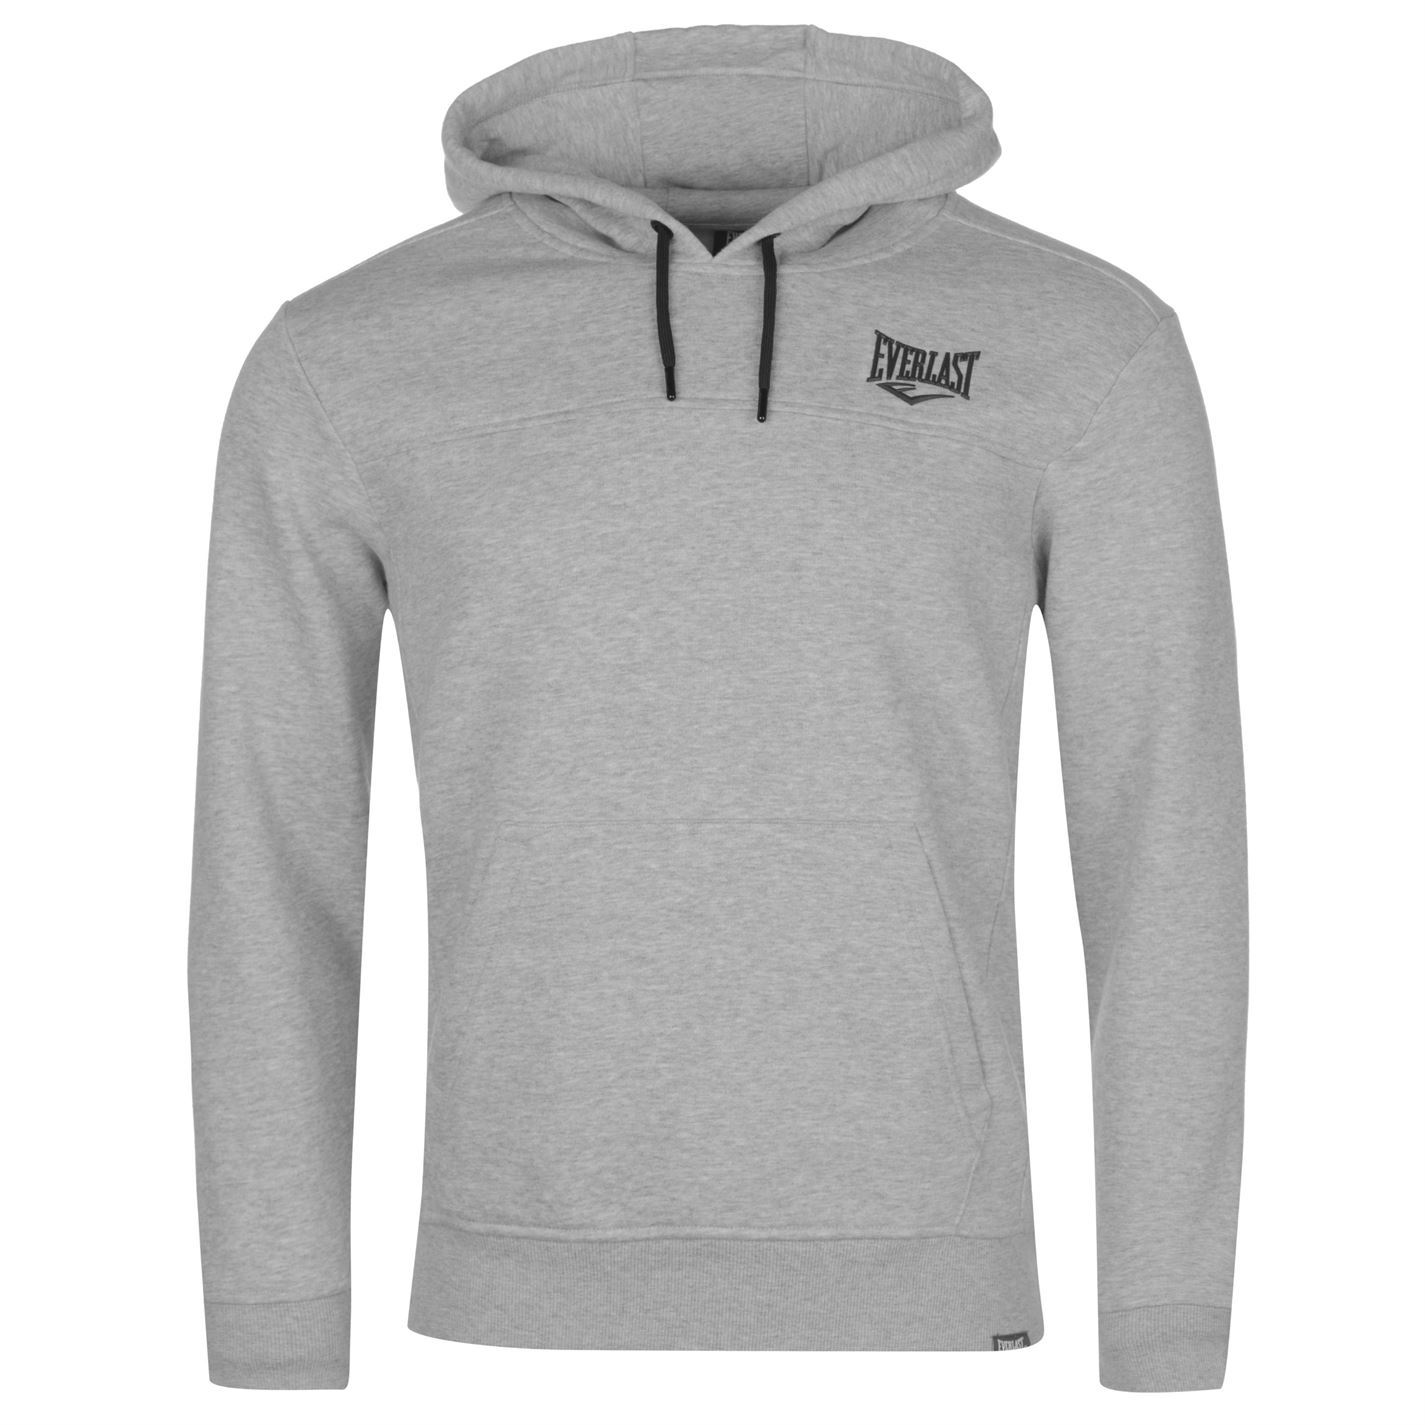 Everlast-Logo-Pullover-Hoody-Mens-OTH-Hoodie-Hooded-Top-Sweatshirt-Sweater thumbnail 20